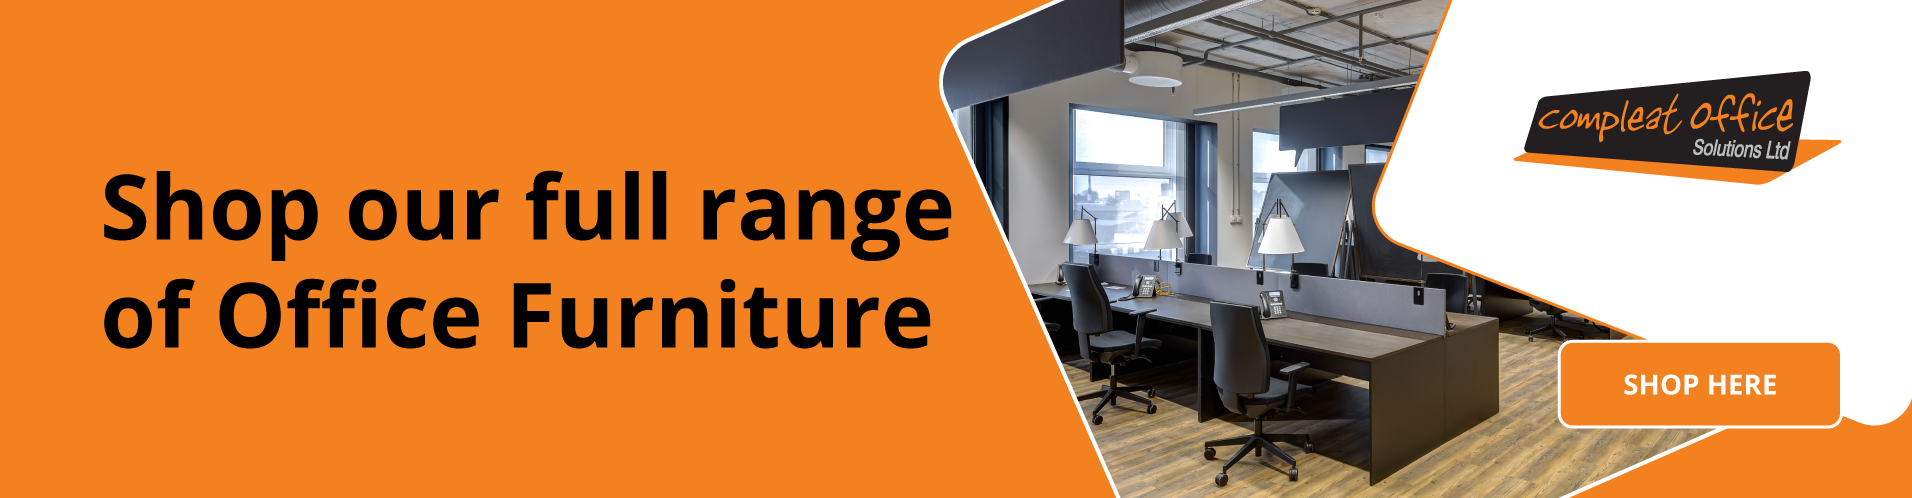 See our full Office Furniture range!